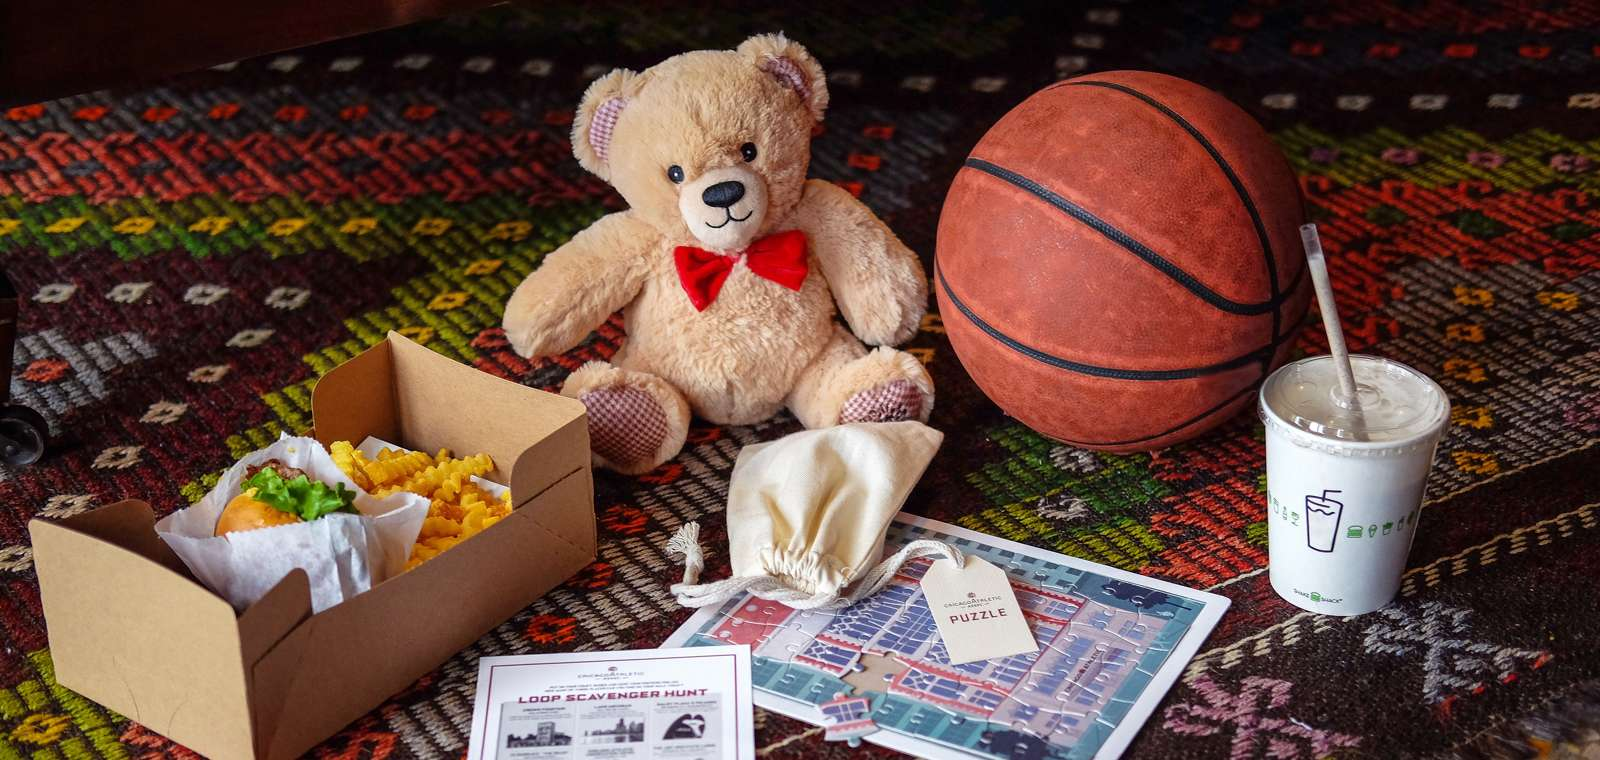 Photo to accompany Family Play & Stay package, highlighting amenities involved in the package: basketball, Shake Shack, puzzle, bingo/scavenger hunt, photographed in Founders 328